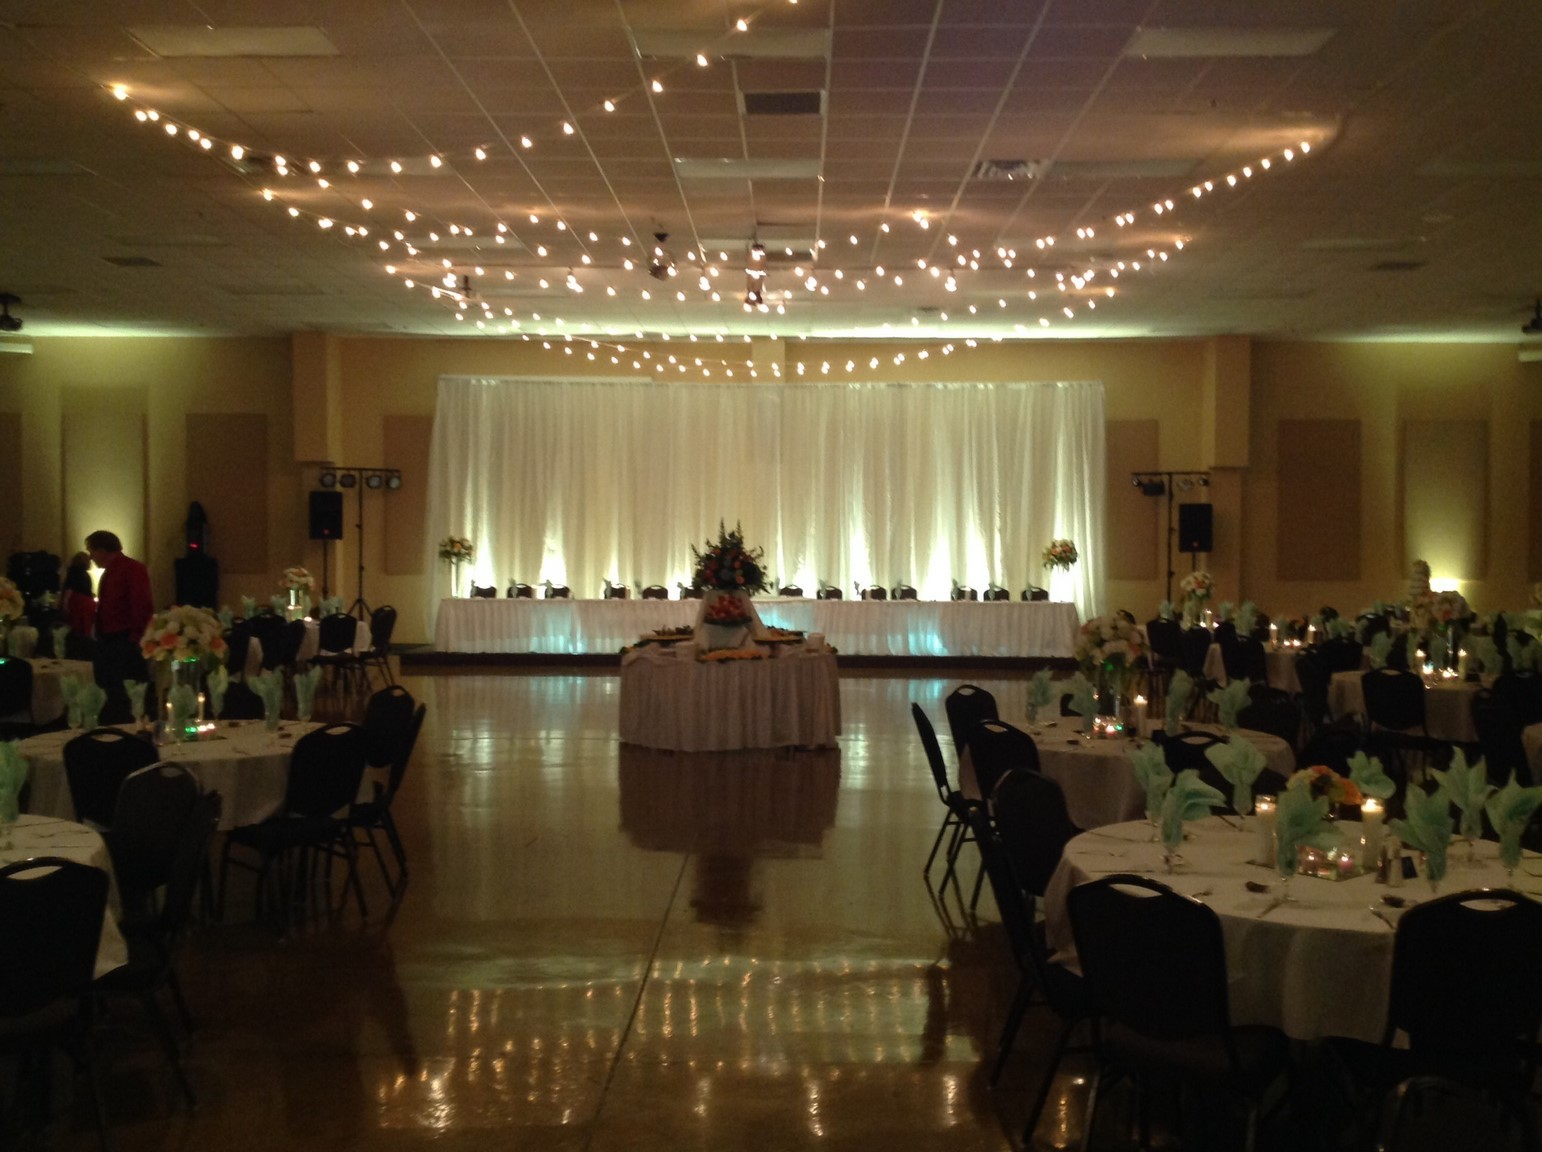 A Learning Place & Lighting Decor u0026 Venue Photo Gallery | Party Pleasers Services